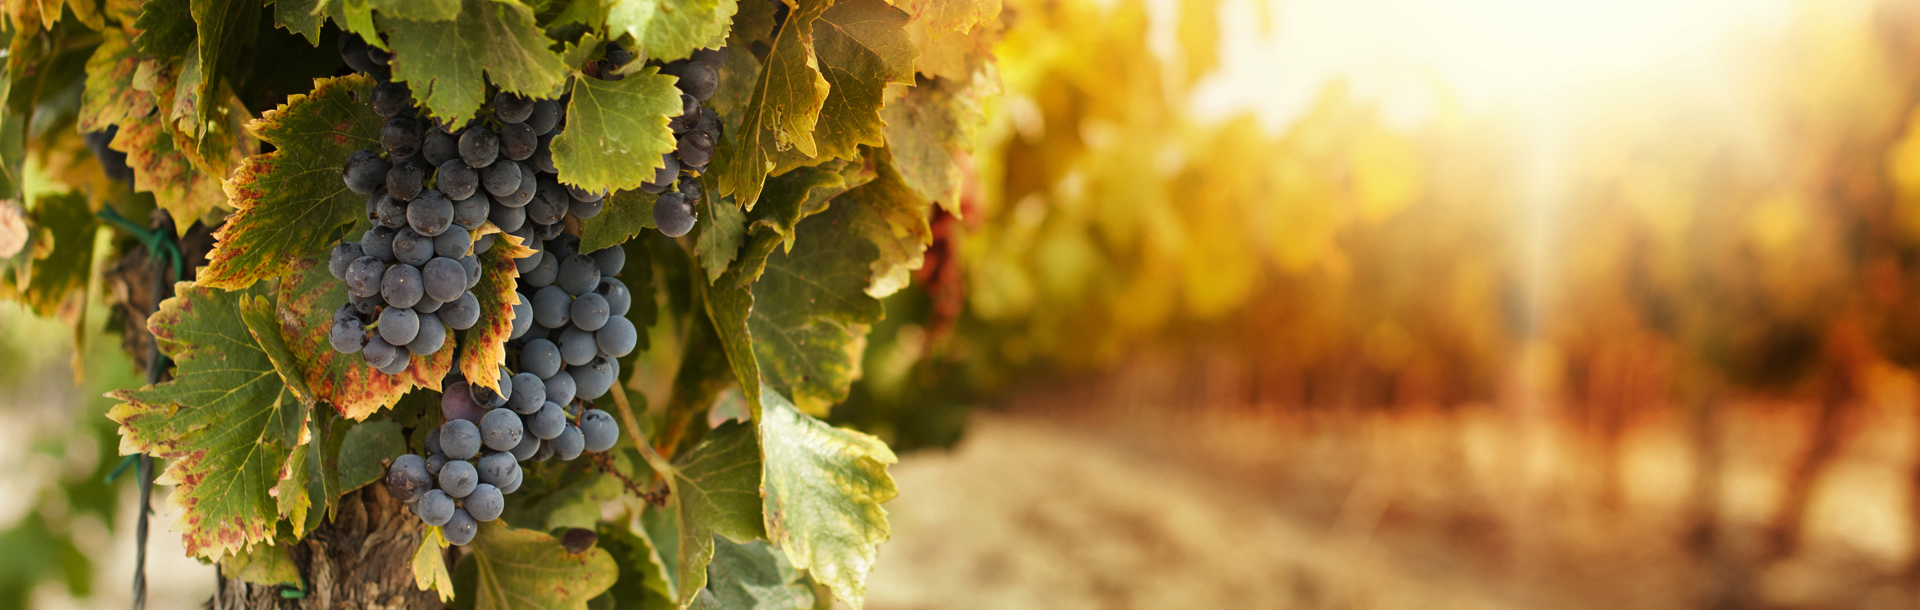 grapes-for-wine-story-hi-res